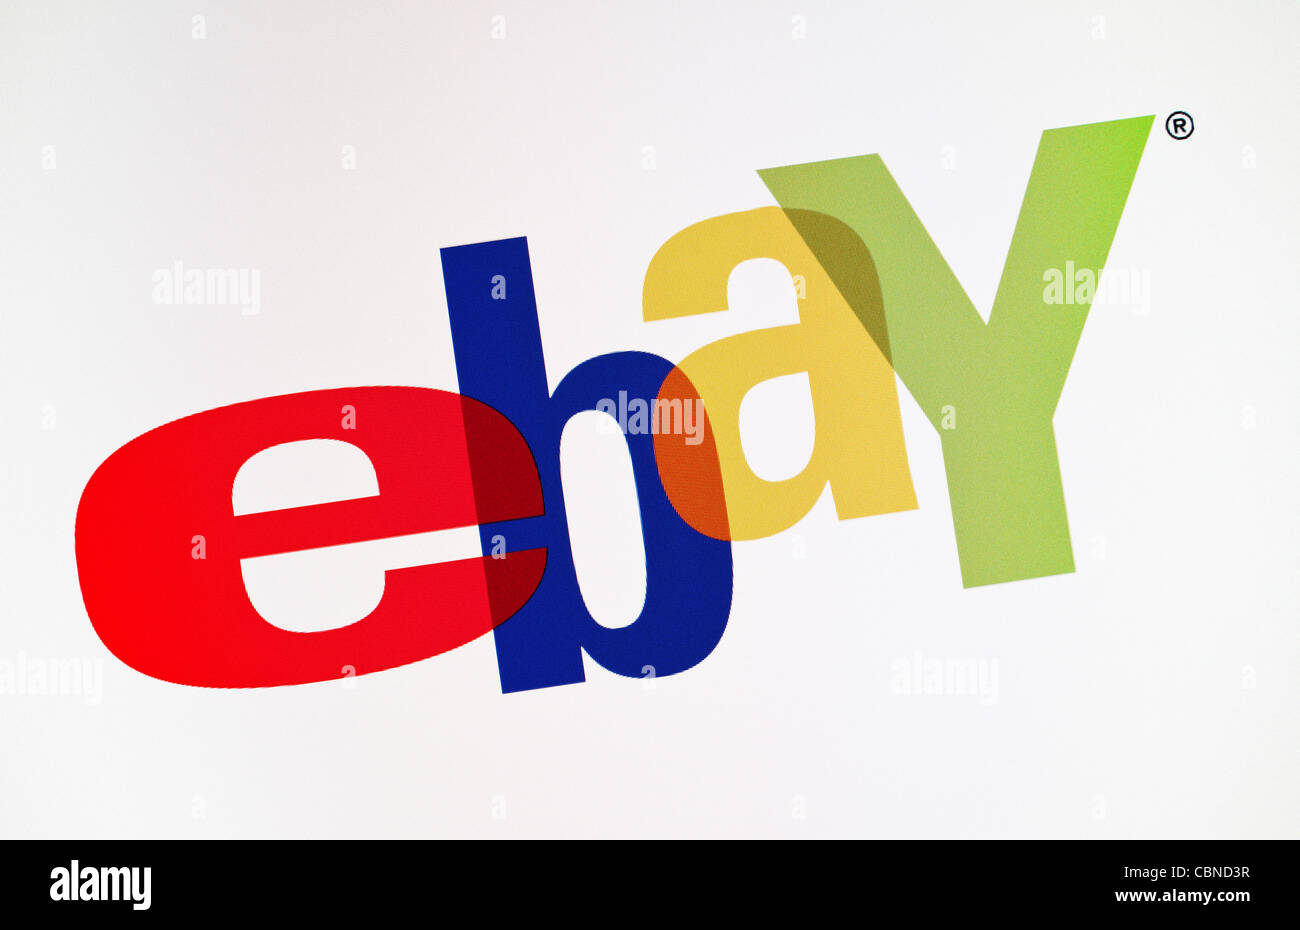 Close-up view of eBay logotype on a monitor screen. - Stock Image